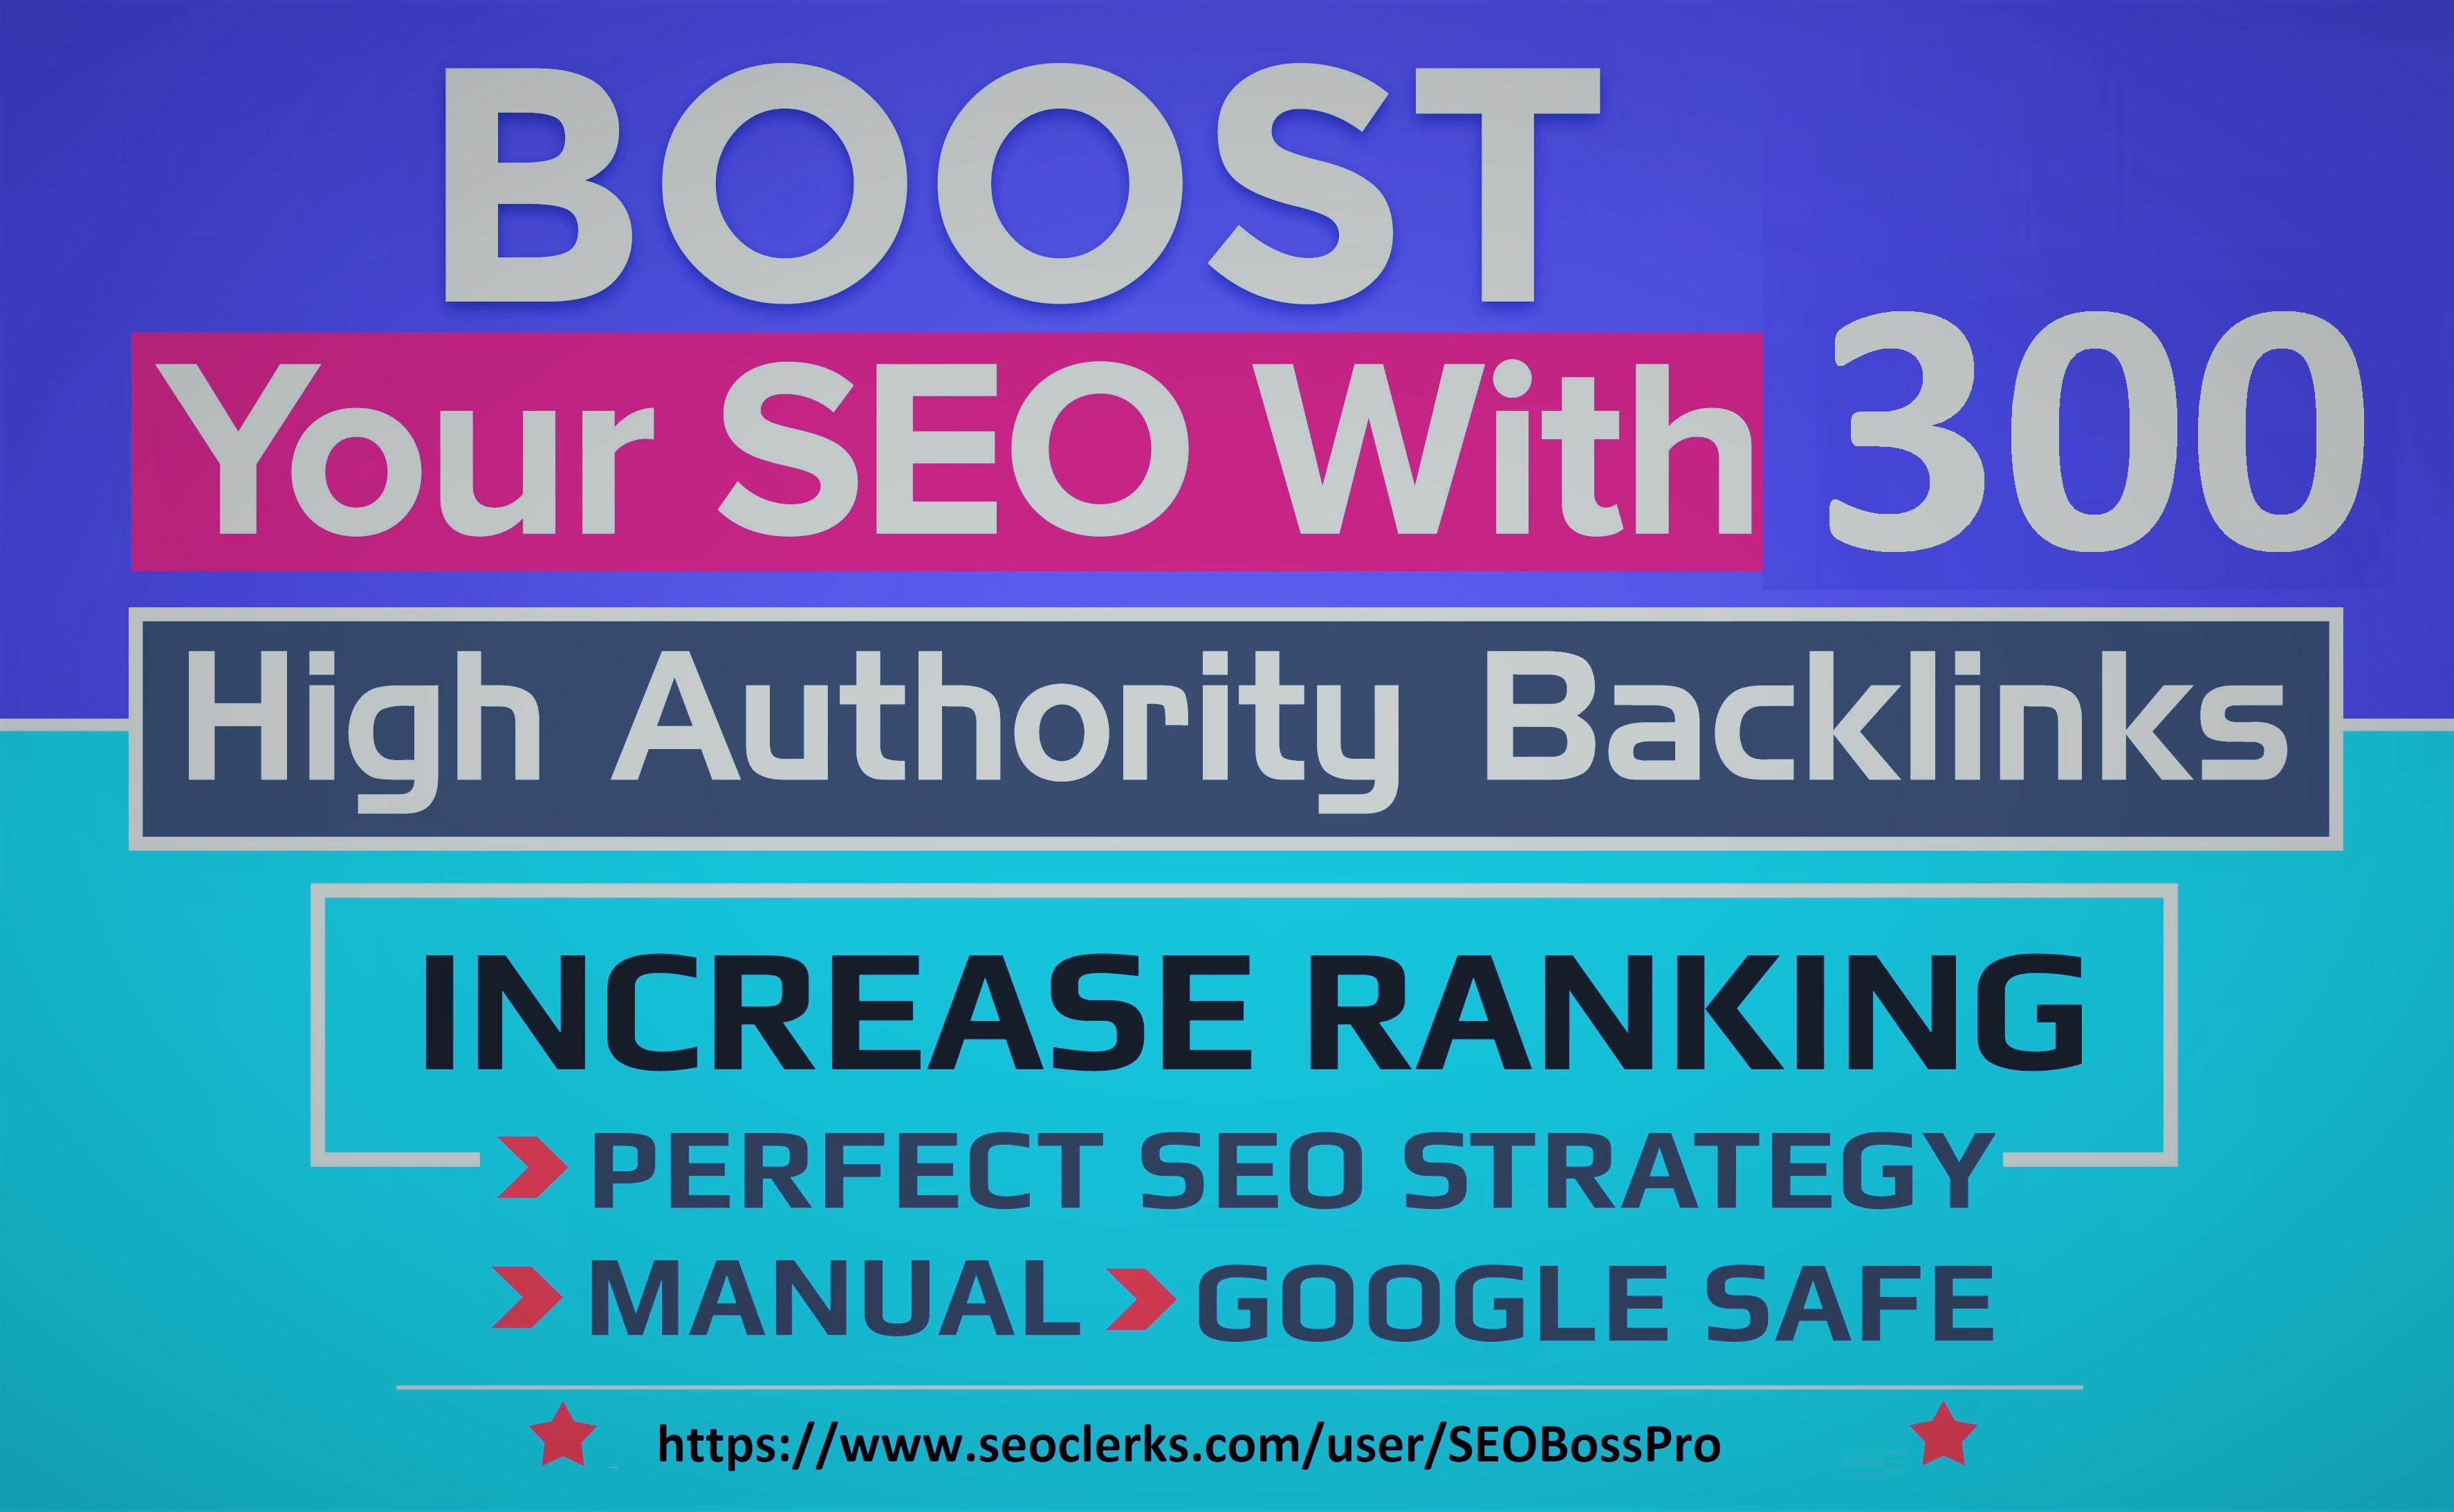 Boost Your SEO with 300 Profile High Authority Backlinks Increase Ranking